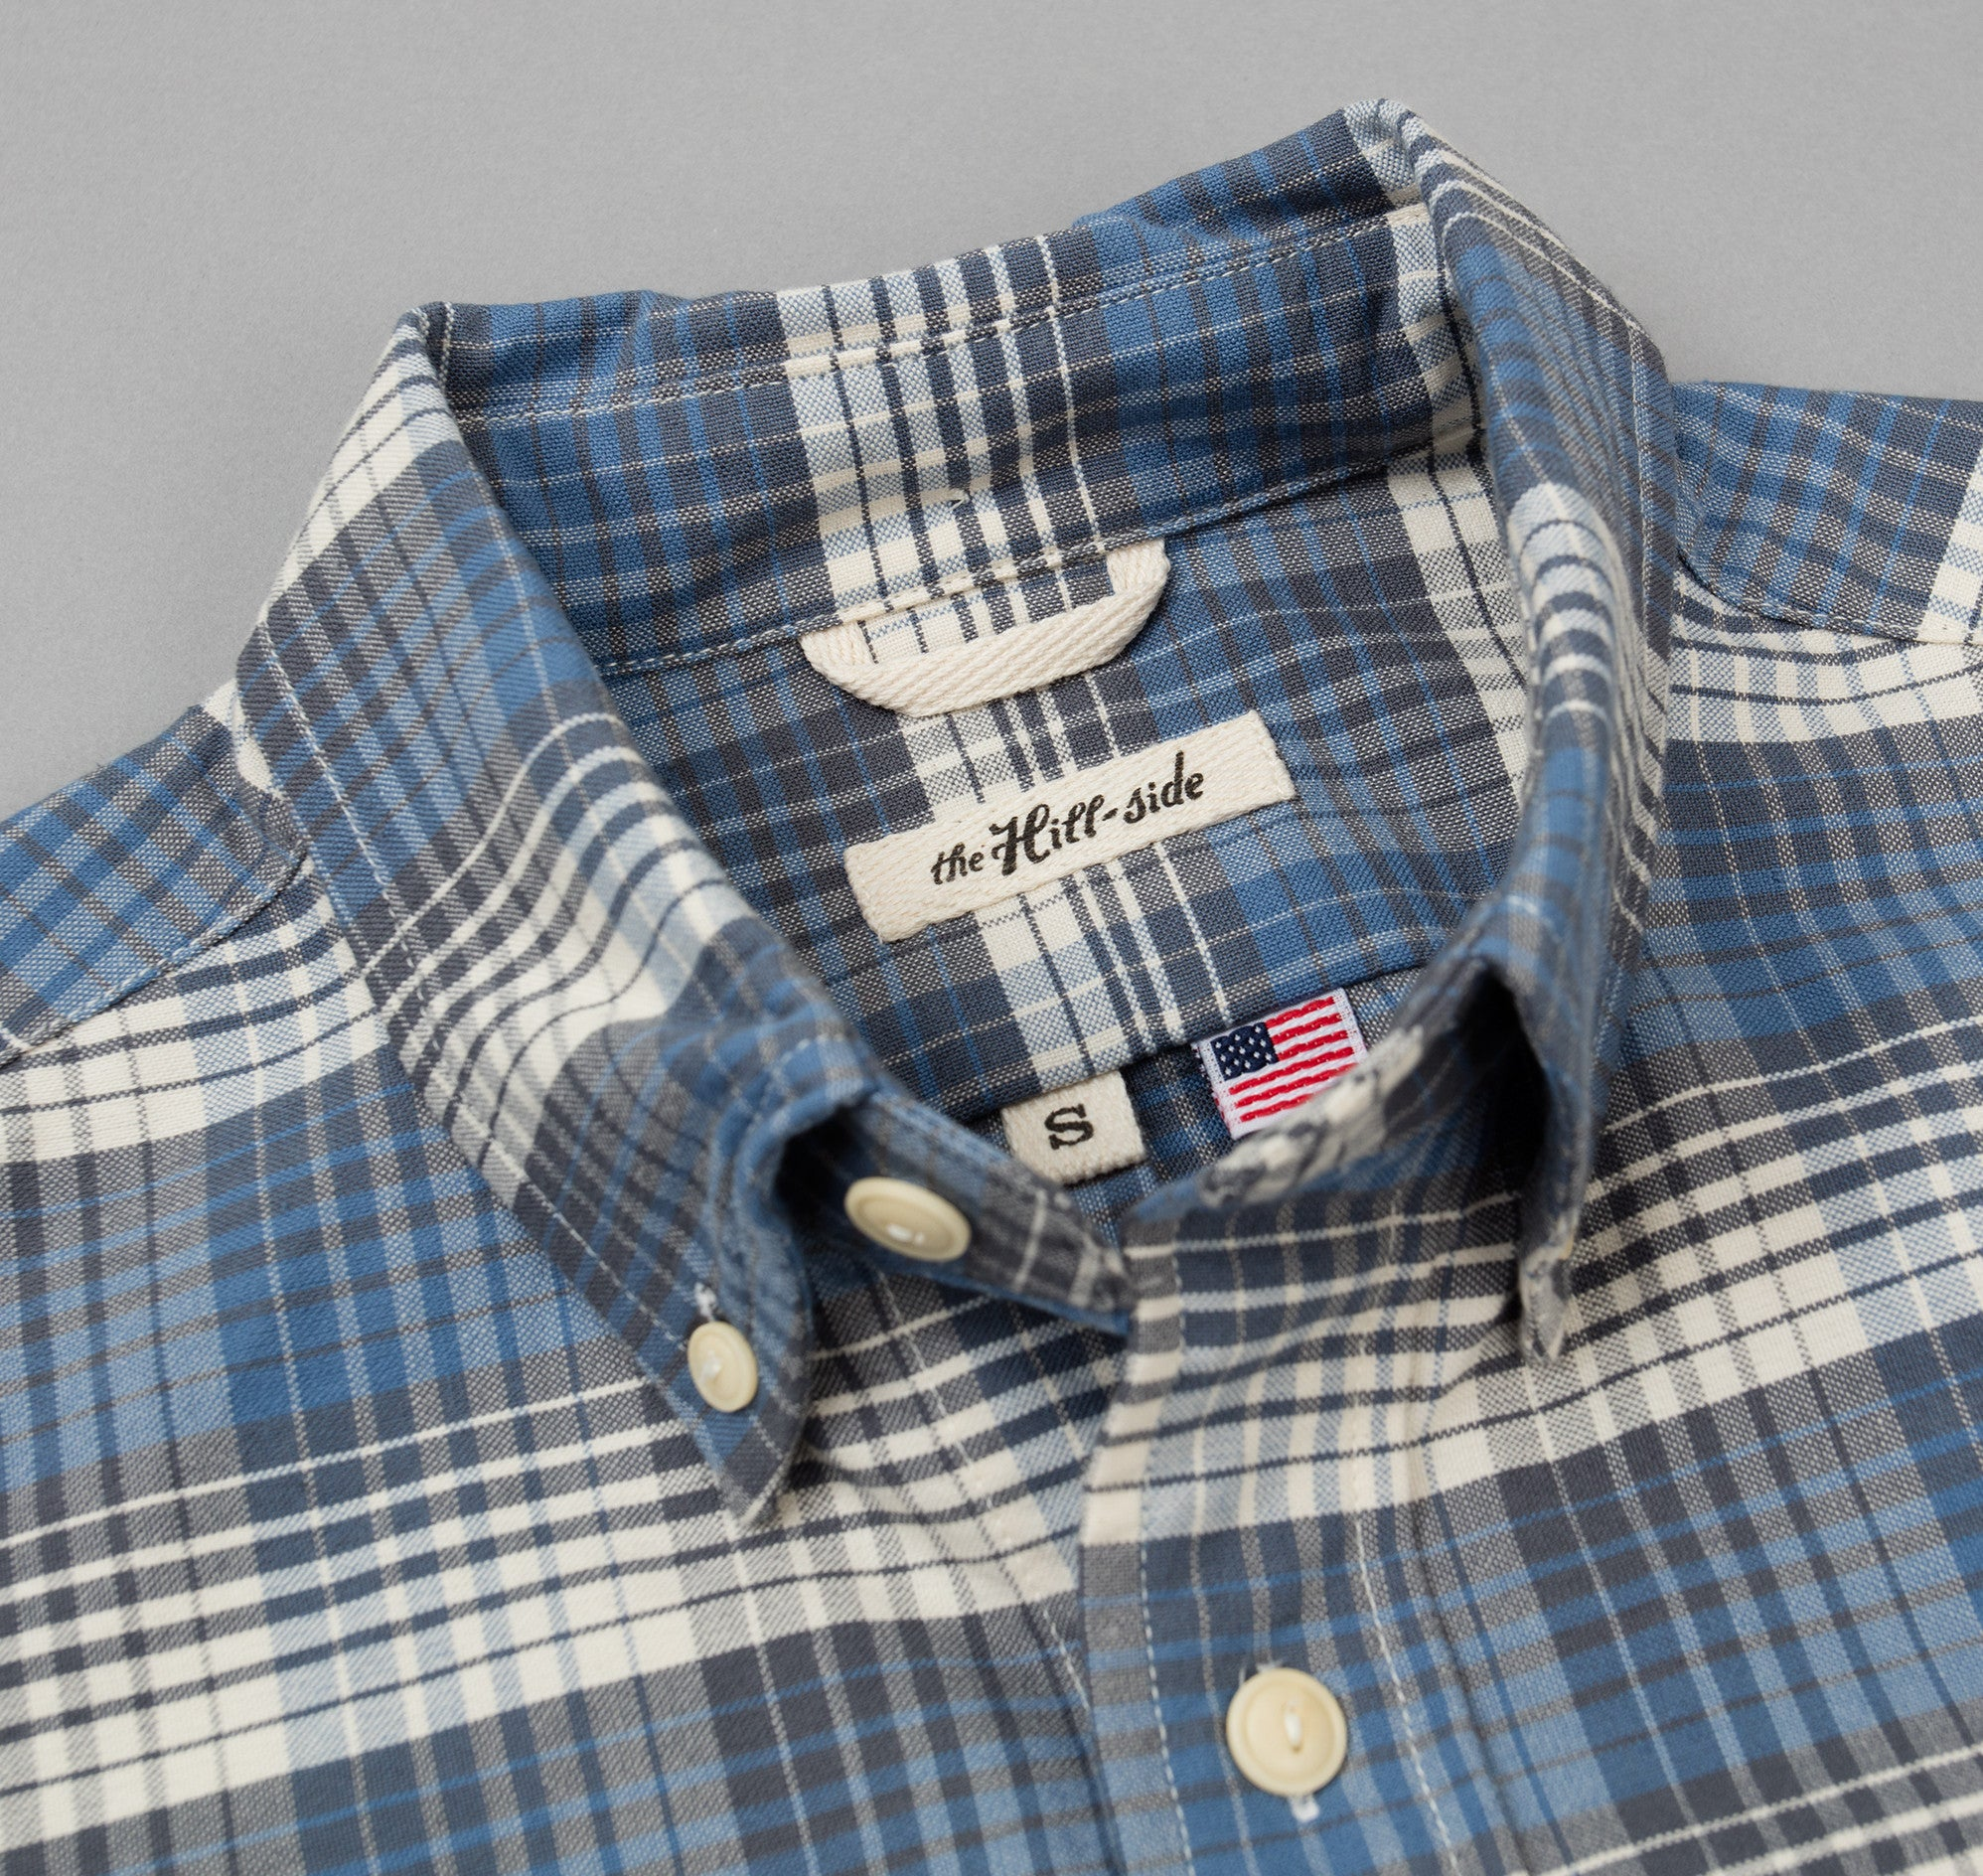 The Hill-Side - TH-S Mills Selvedge Waterfall Plaid Chambray Button-Down Shirt, Light Indigo / Grey - SH1-296 - image 1